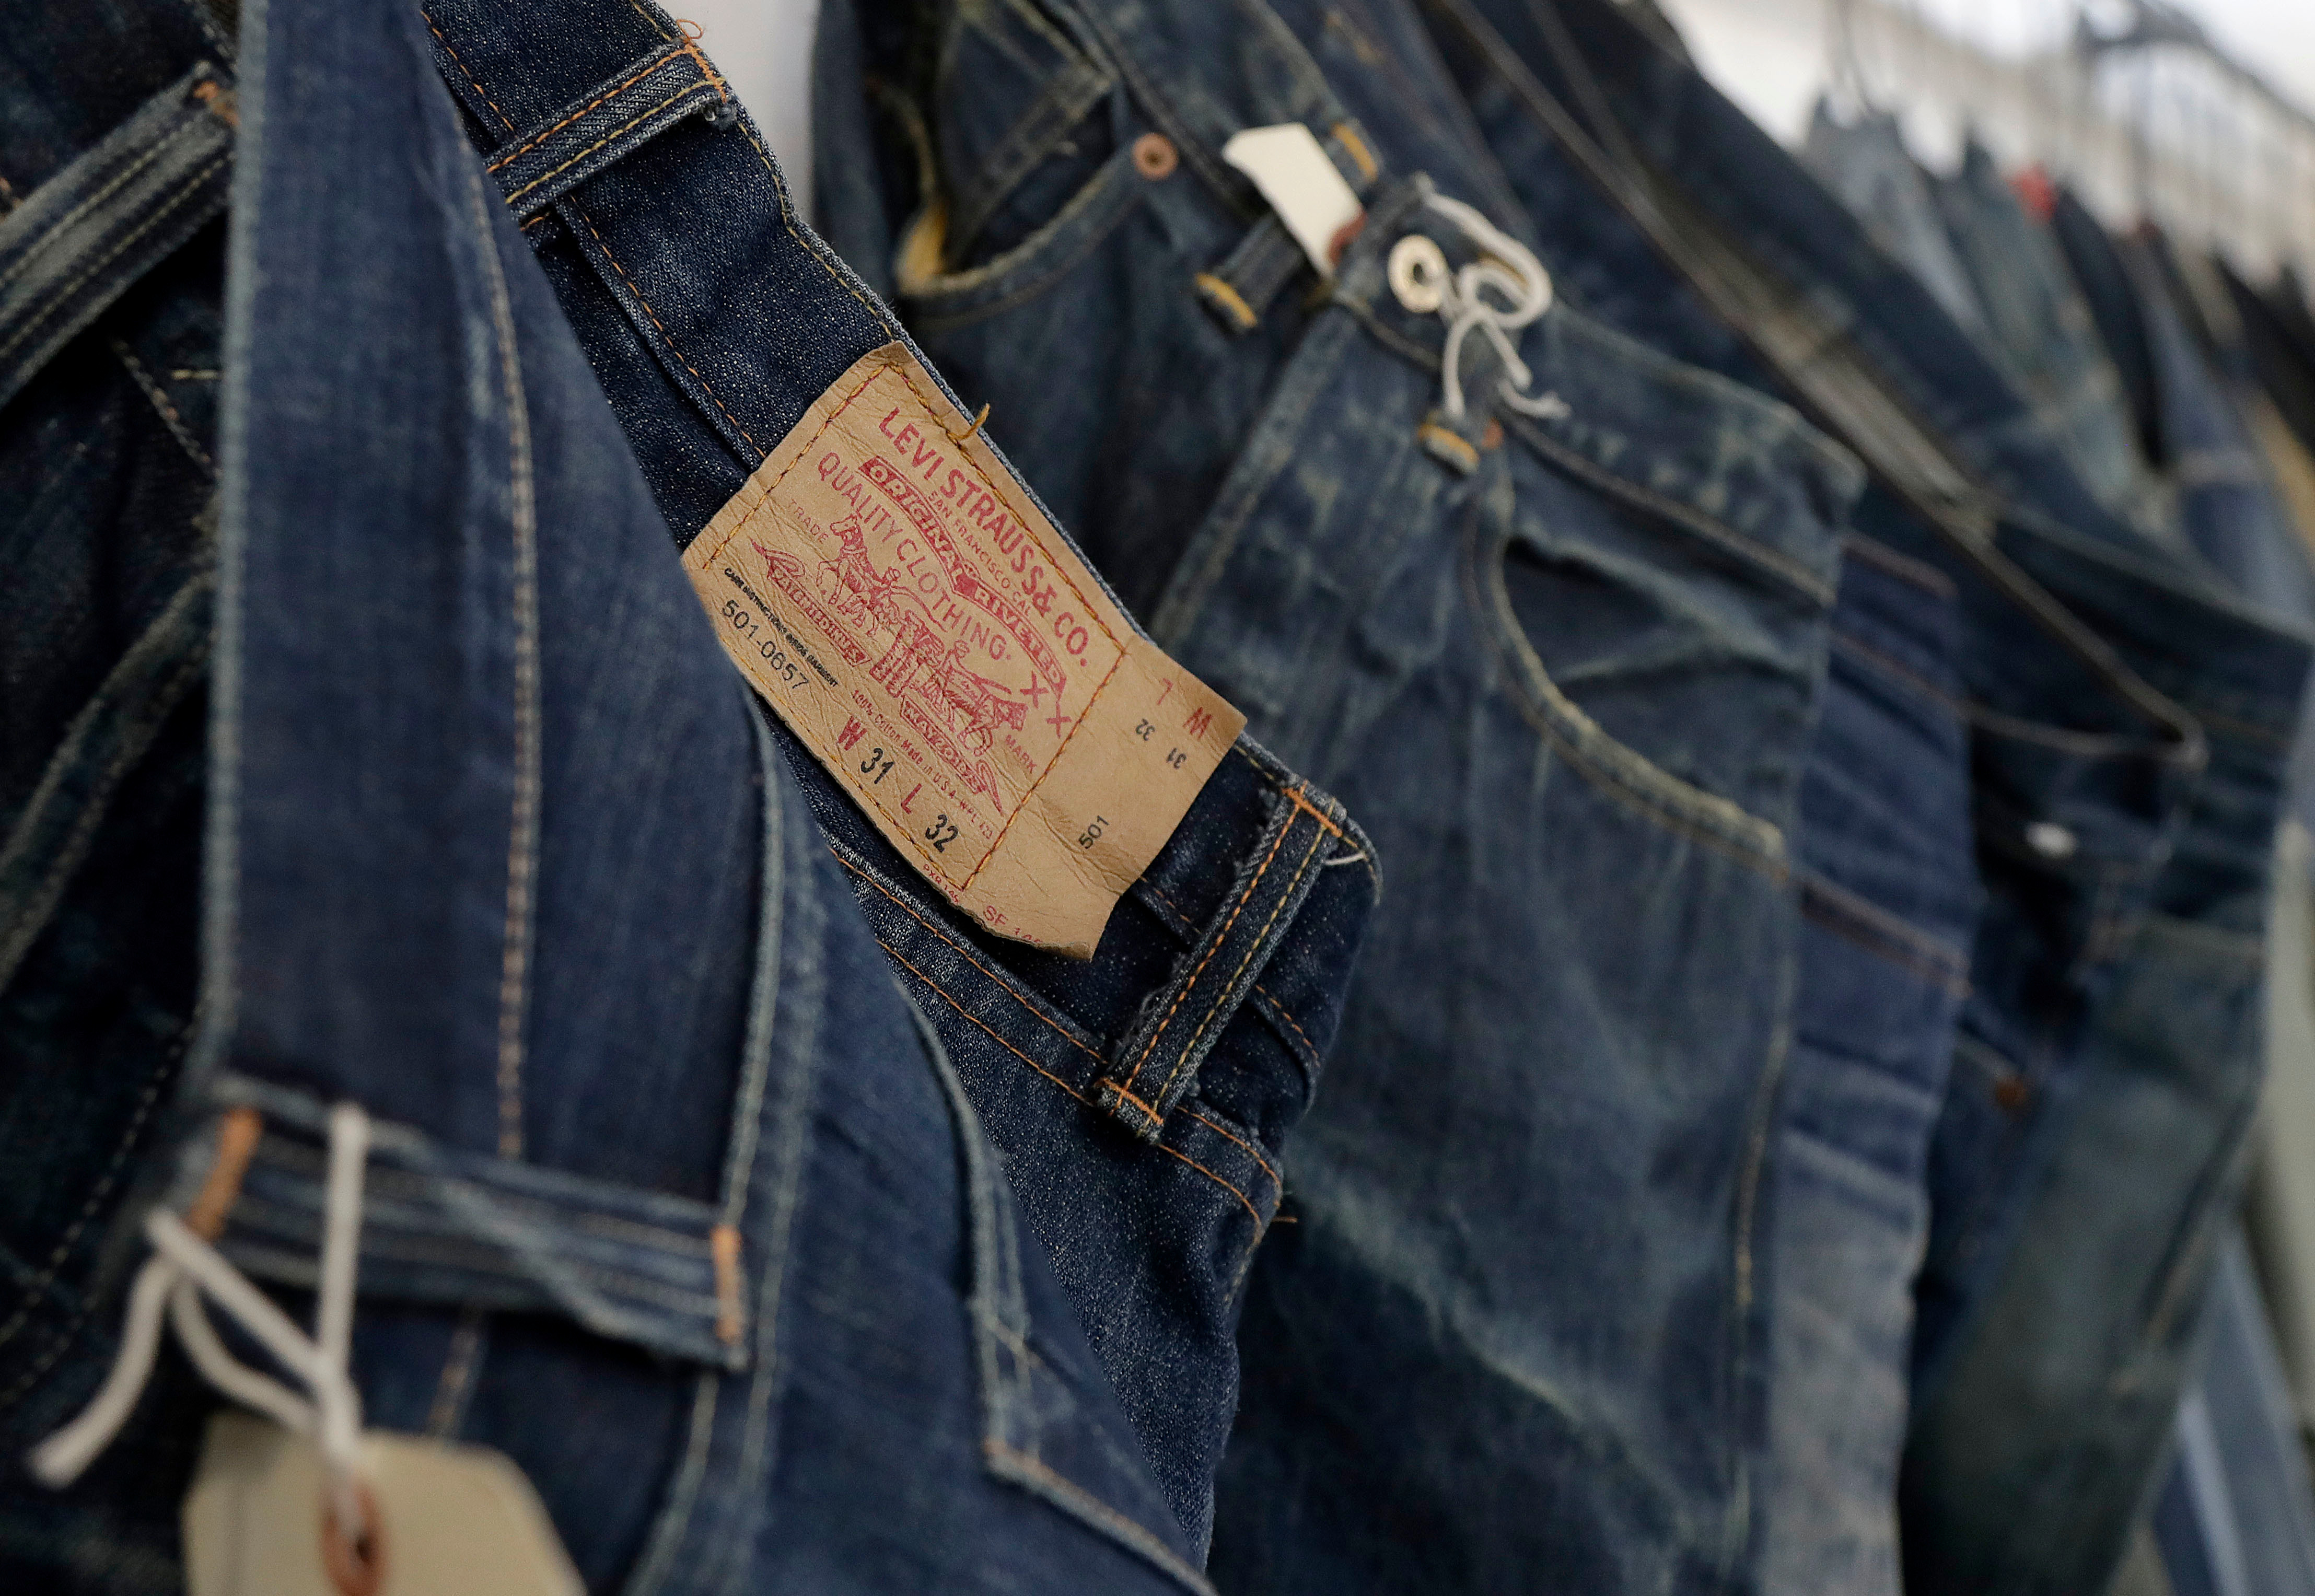 This photo shows Levi's jeans hanging on a wall at Levi's innovation lab in San Francisco. The process of making and selling an item of clothing is speeding up, as shoppers want products faster and faster in the age of Amazon. Companies like Tommy Hilfiger and Levi Strauss are digitizing different steps, like creating digital showrooms for buyers who place orders based on computerized rendering of a garment or producing 3D samples that are emailed to factories, instead of waiting for a physical prototypeDigital Fashion, San Francisco, USA - 09 Feb 2018